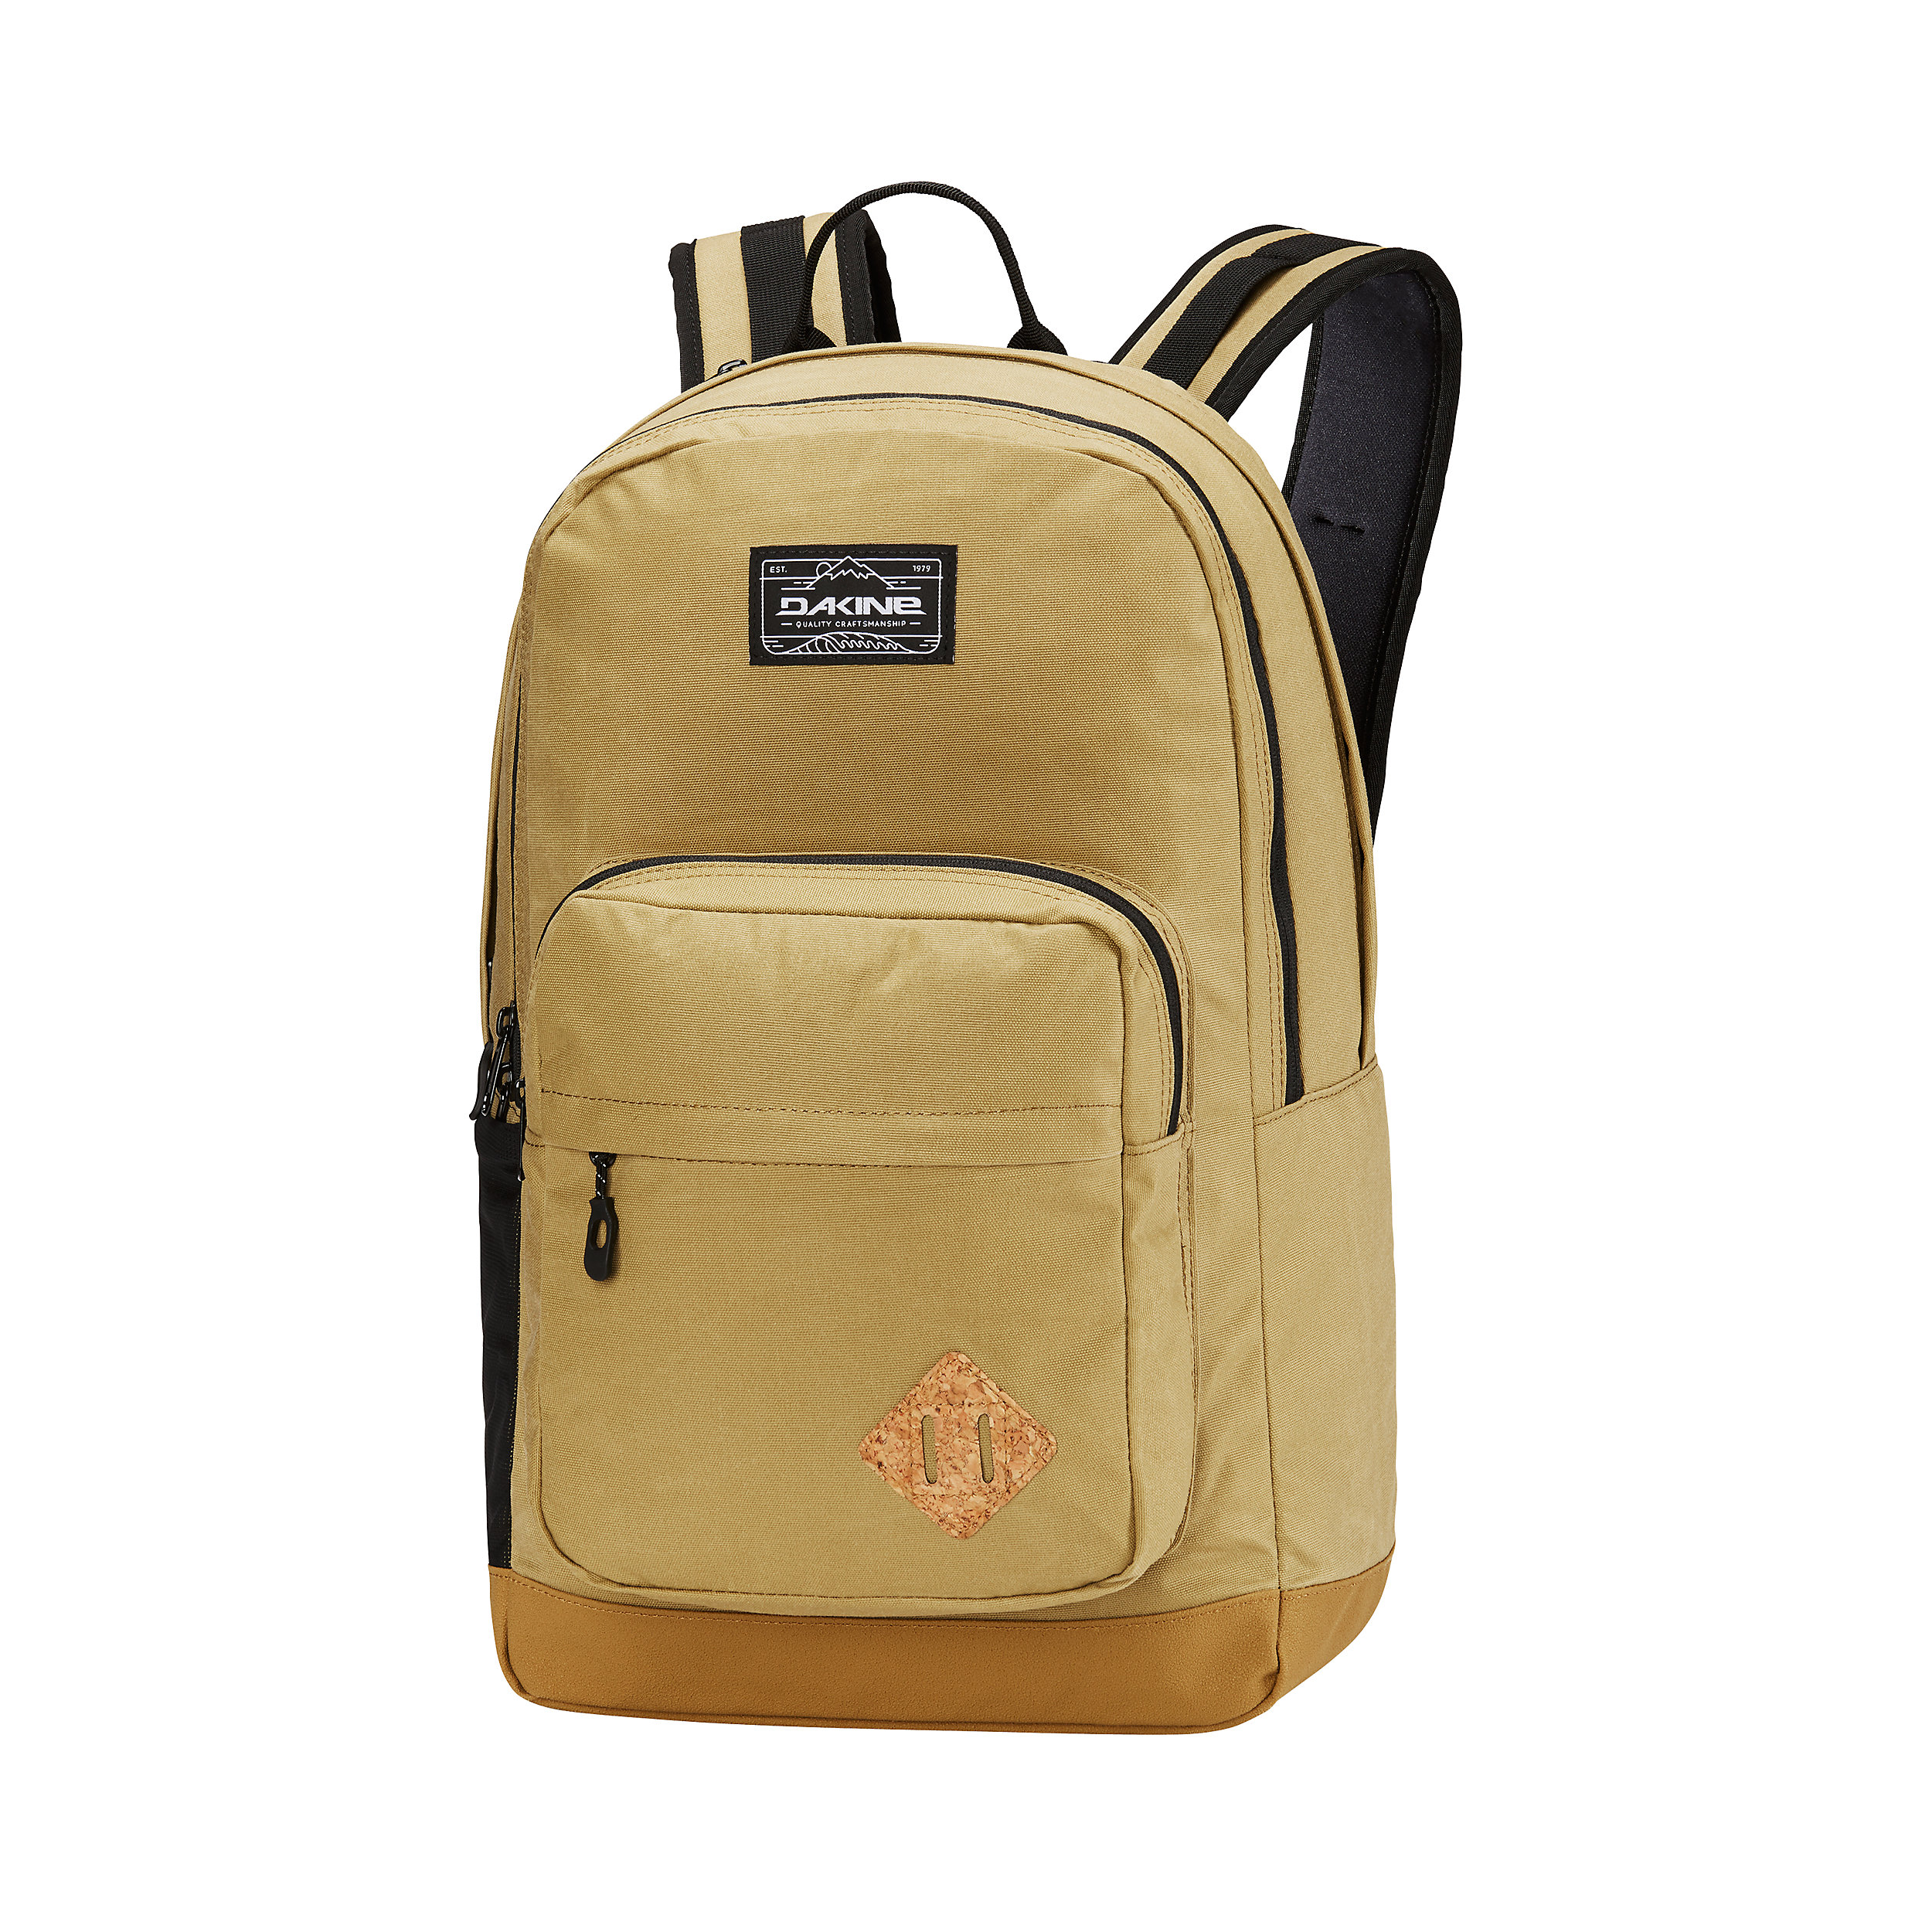 "Backpack 365 Pack DLX 27L 15"" Packs"